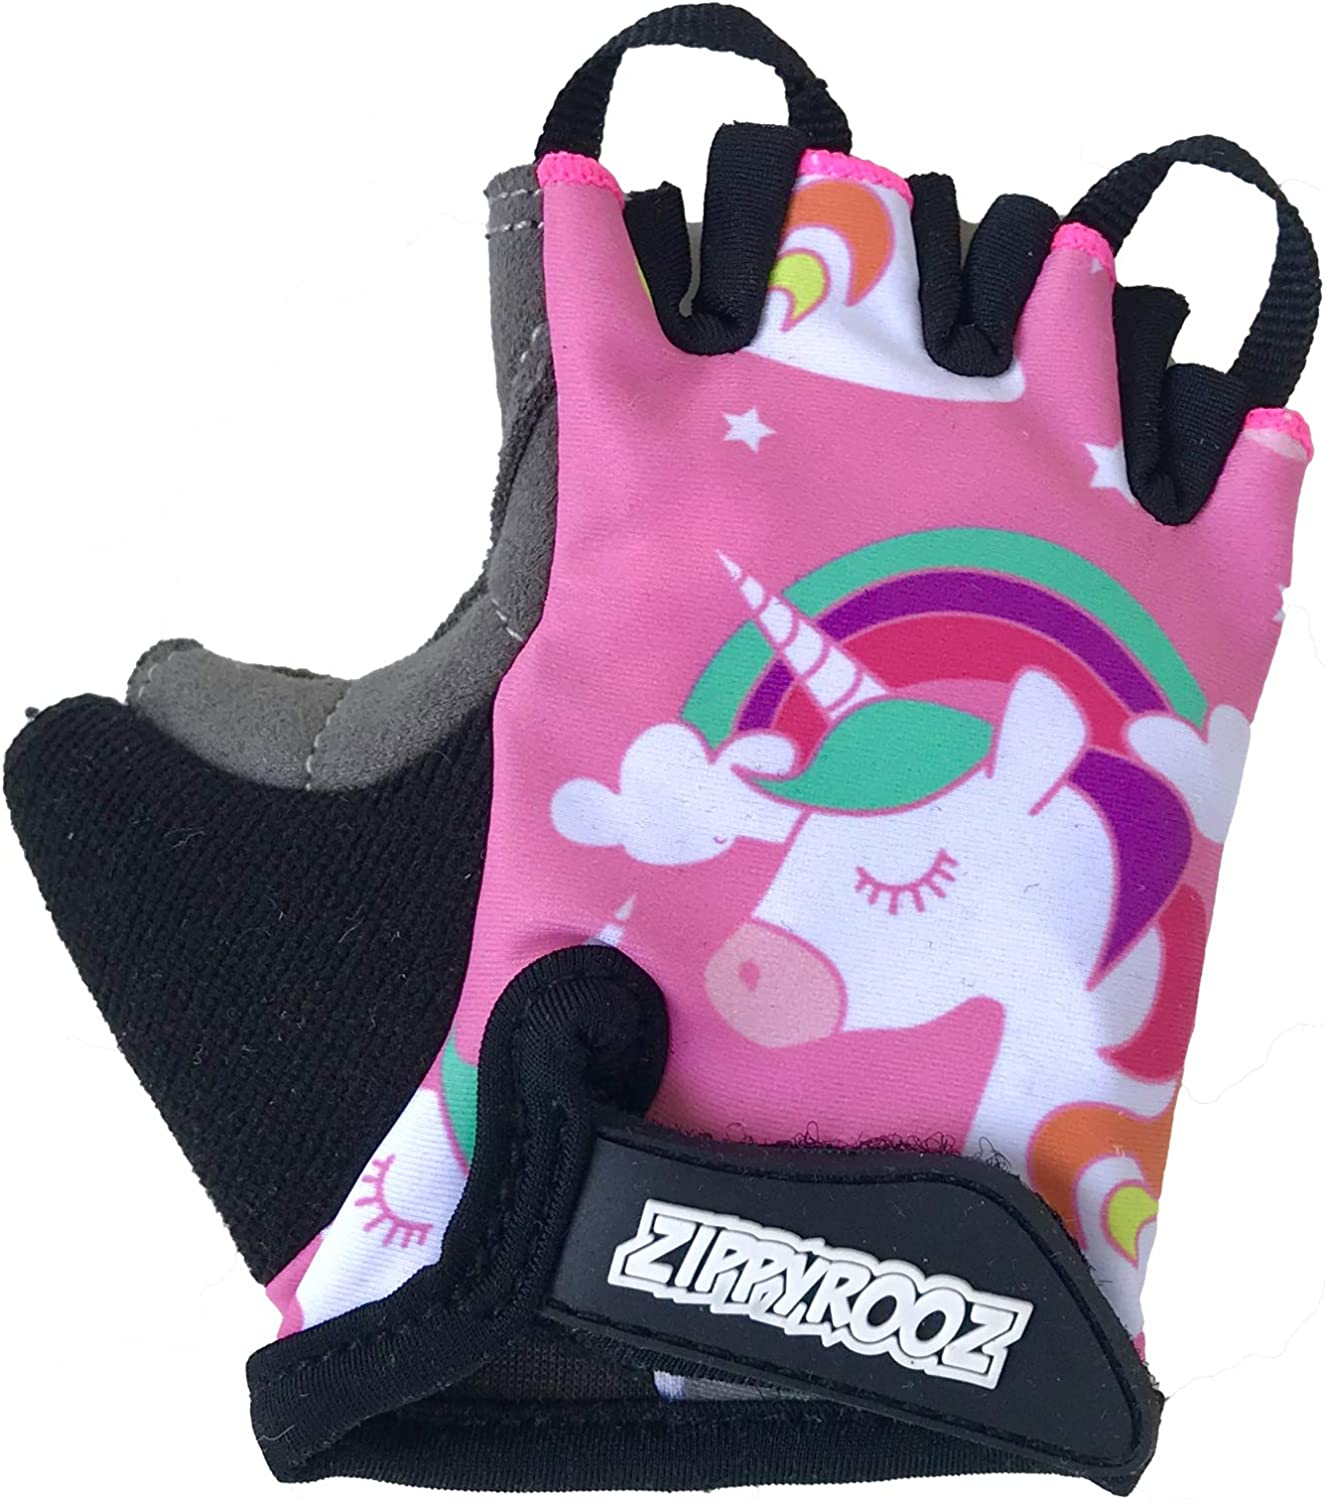 ZippyRooz Toddler & Little Kids Bike Gloves for Balance and Pedal Bicycles for Ages 1-8 Years Old. 8 Designs for Boys & Girls